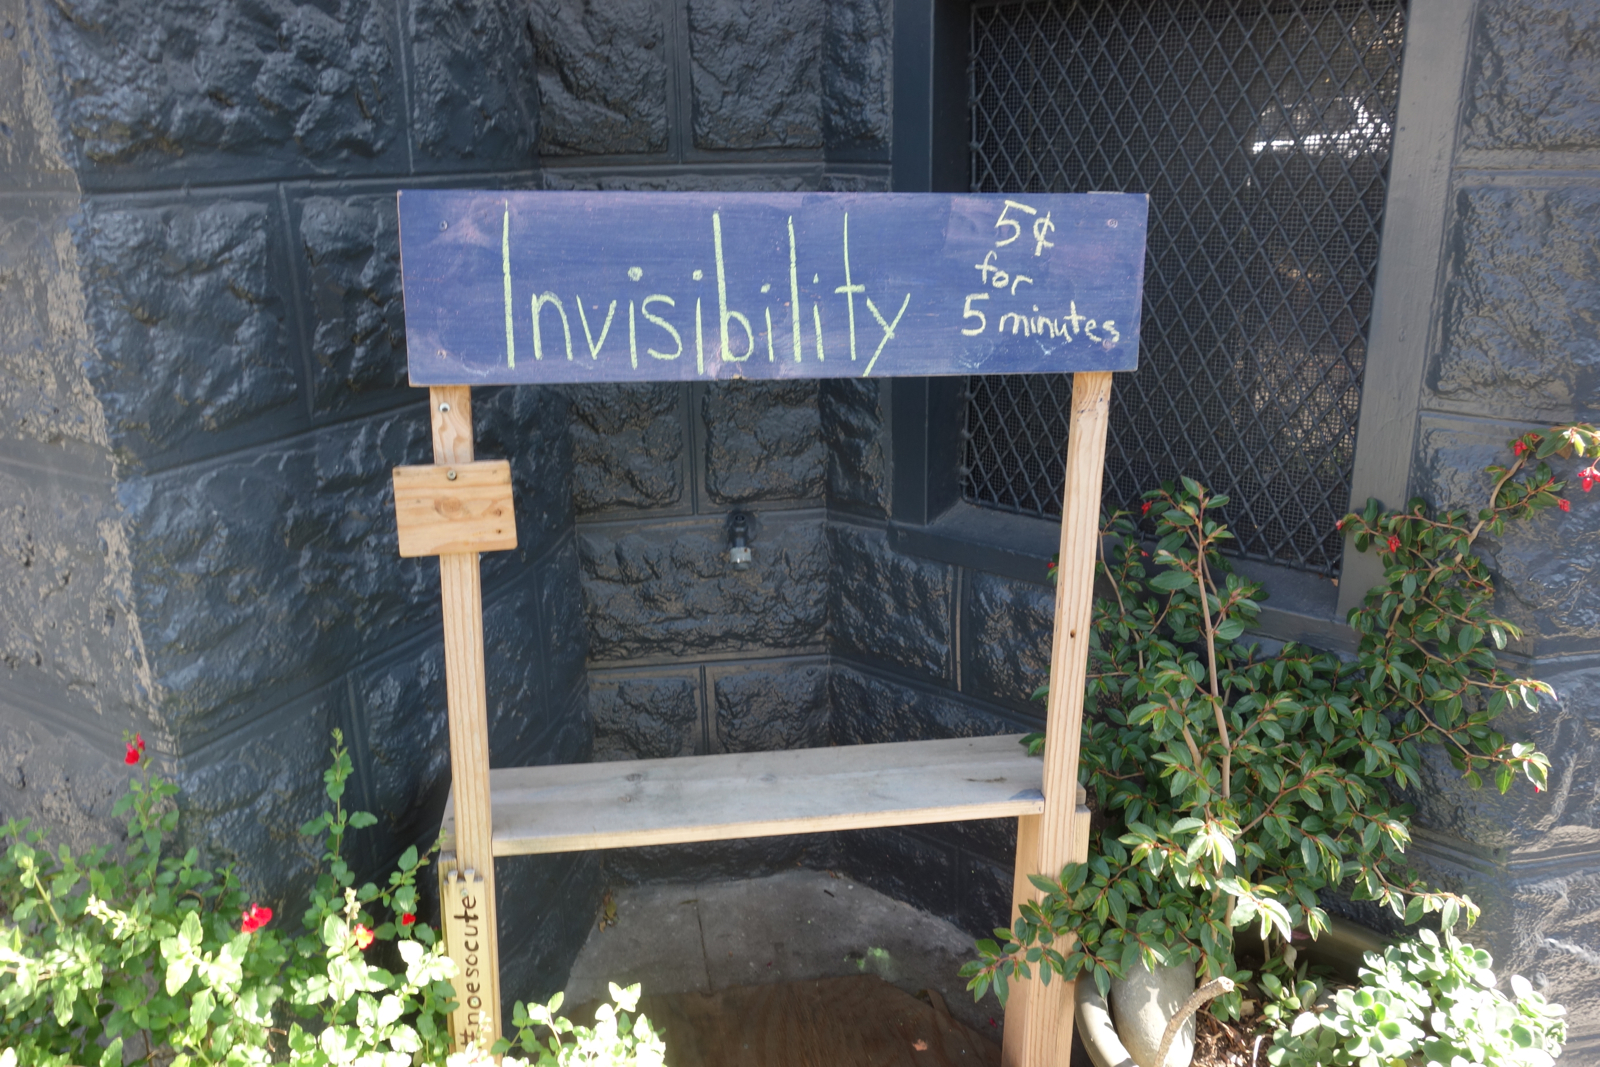 ' invisibility', by garann. Source:  Flickr.  Bench in garden, with chalkboard back support, with text saying 'Invisibility 5¢ for 5 minutes'. CC BY-SA 2.0.)